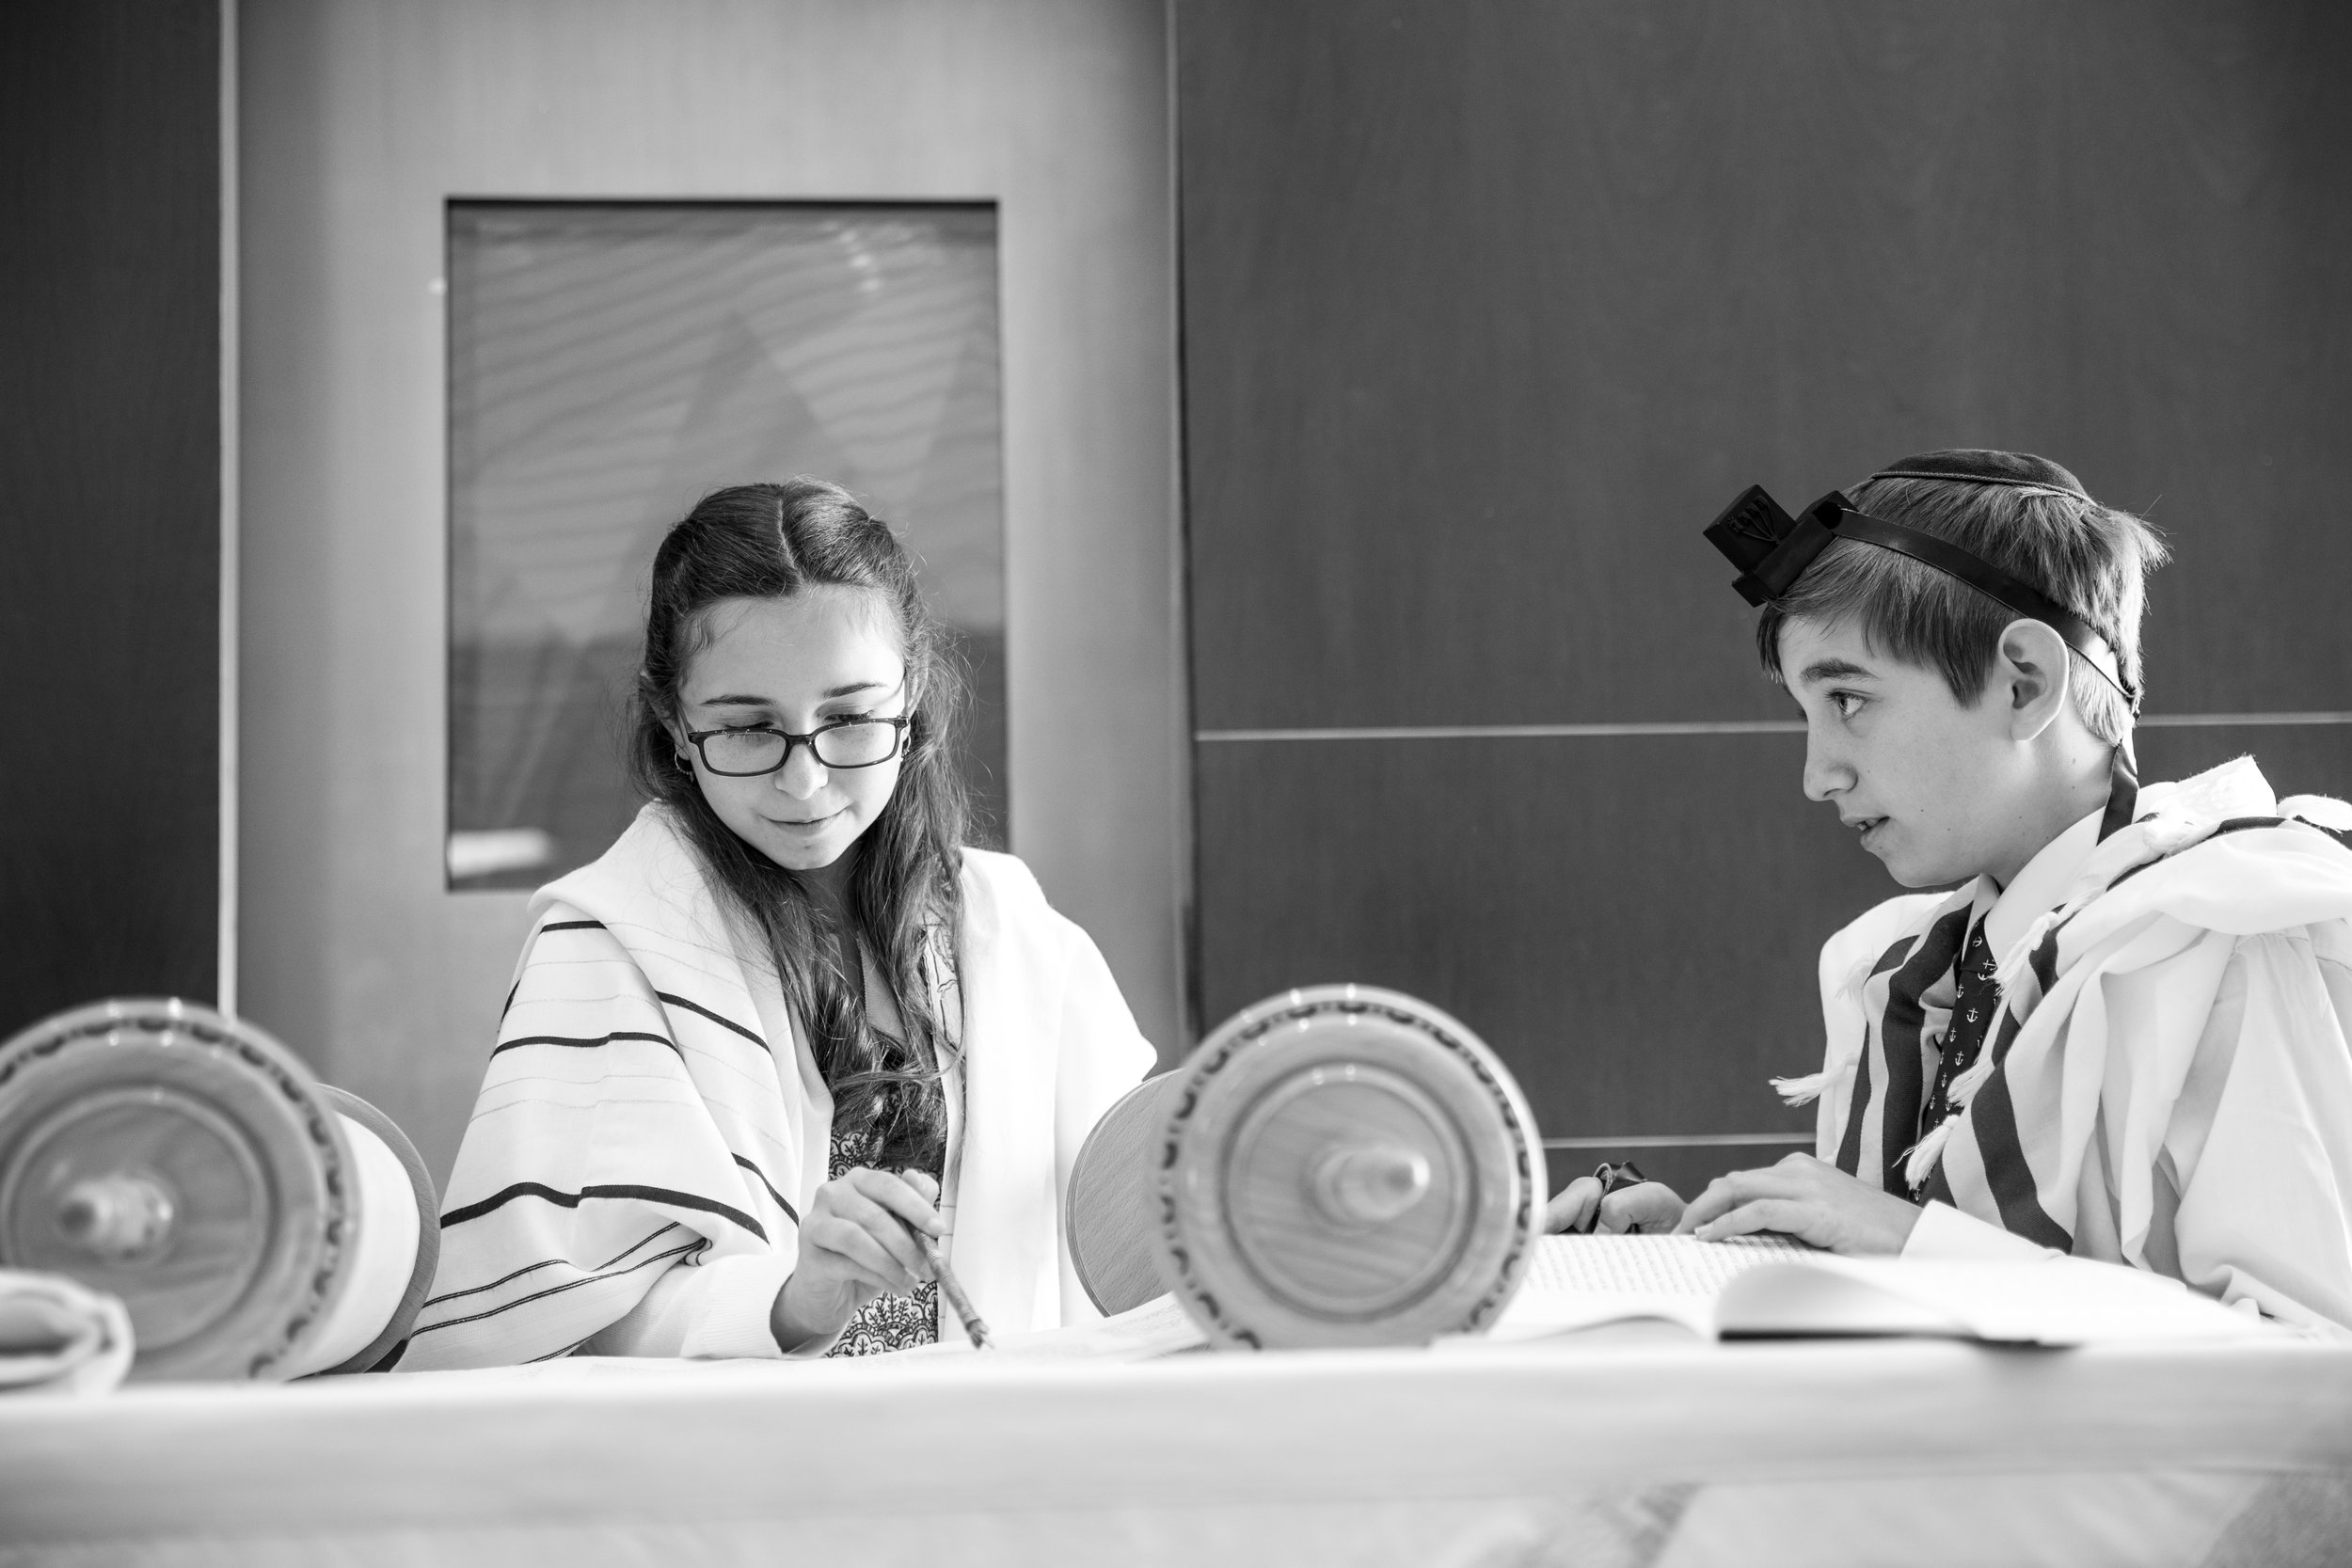 A beautiful moment as Meirav reads from the Torah while Asher lends support when needed. -